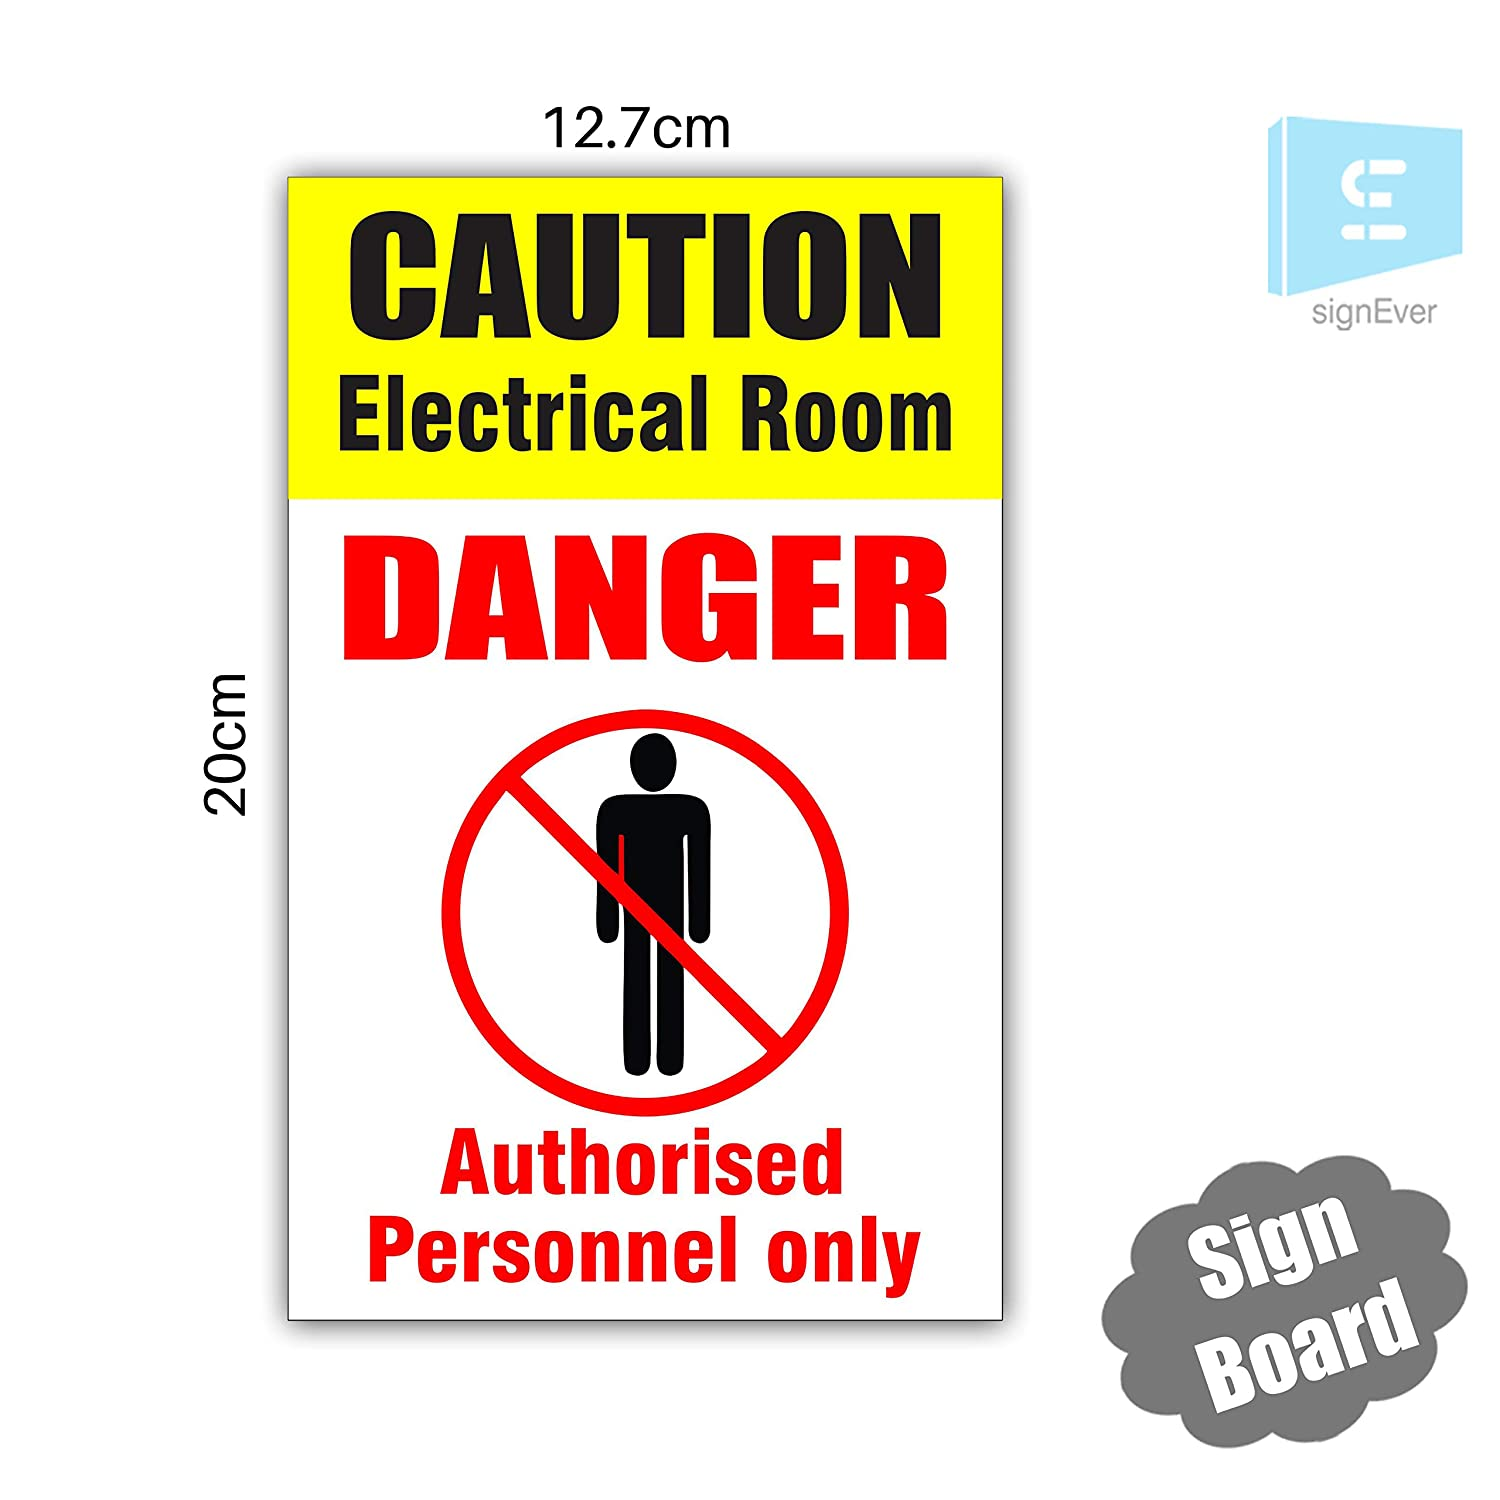 SIGN EVER™ Caution Electrical Room Danger Authorised